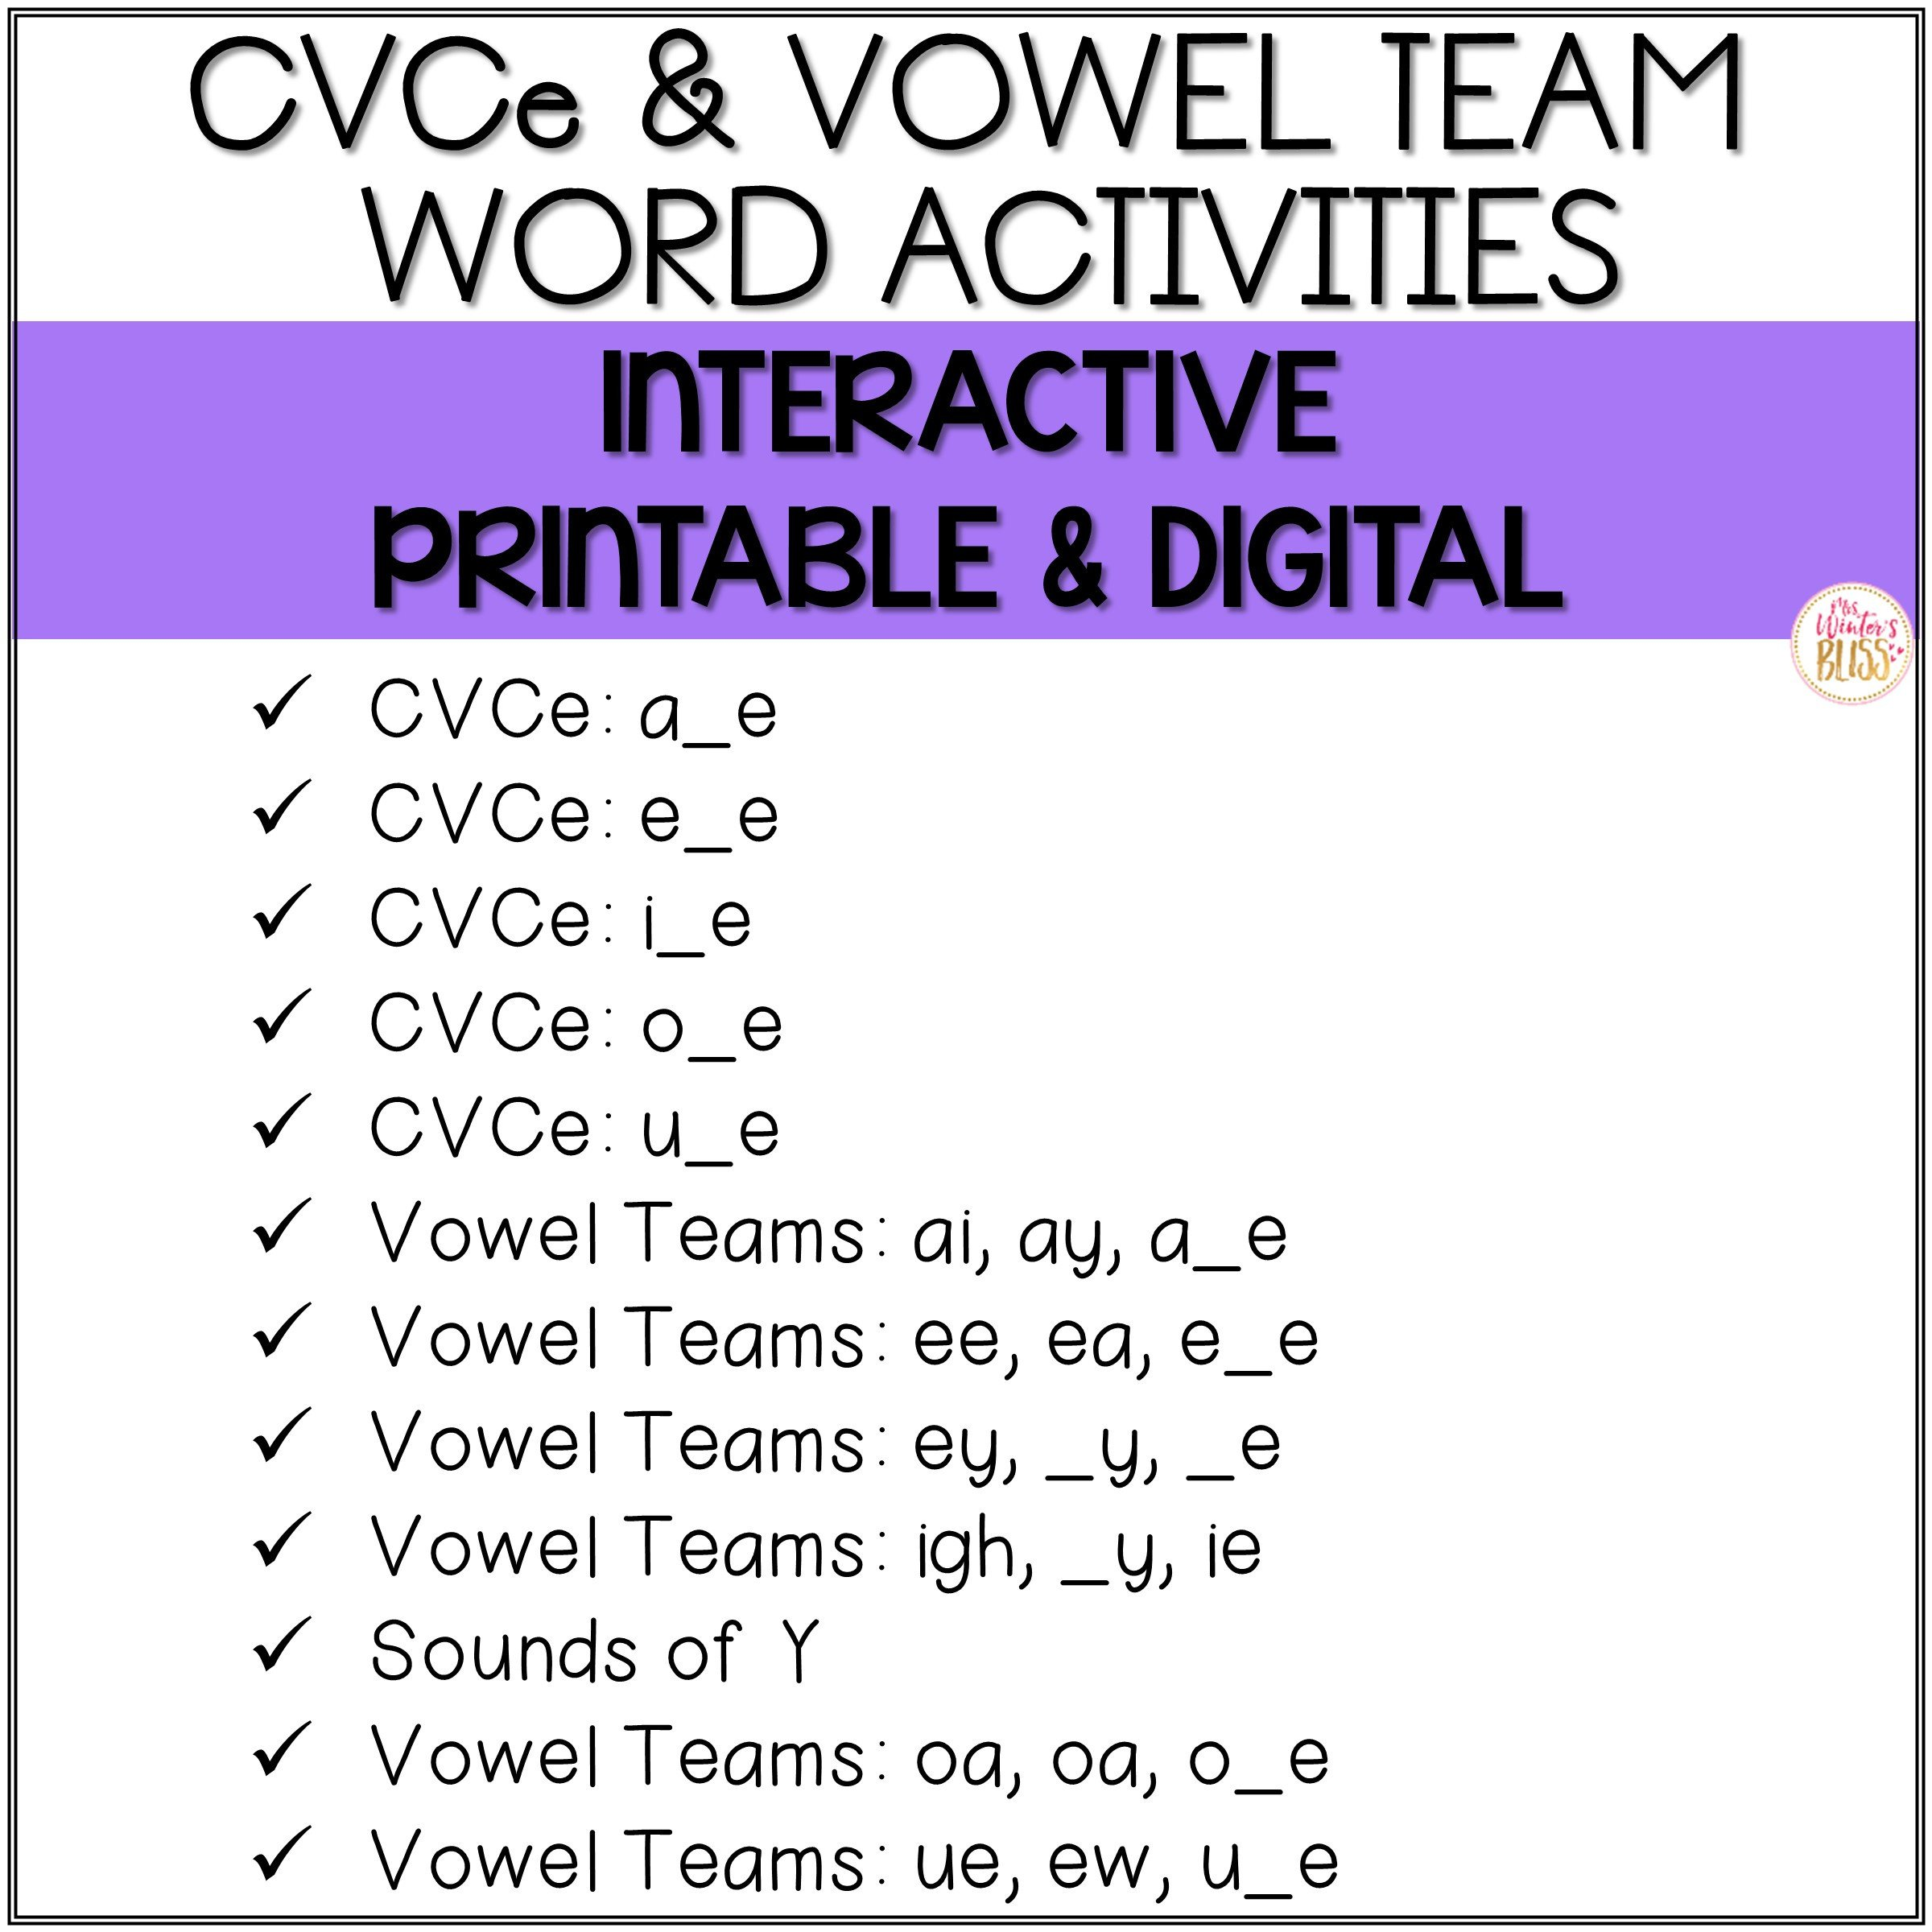 Vowel Team Ea Worksheets Long Vowel Phonics Printable & Digital Preloaded Seesaw™ & Google Classroom™